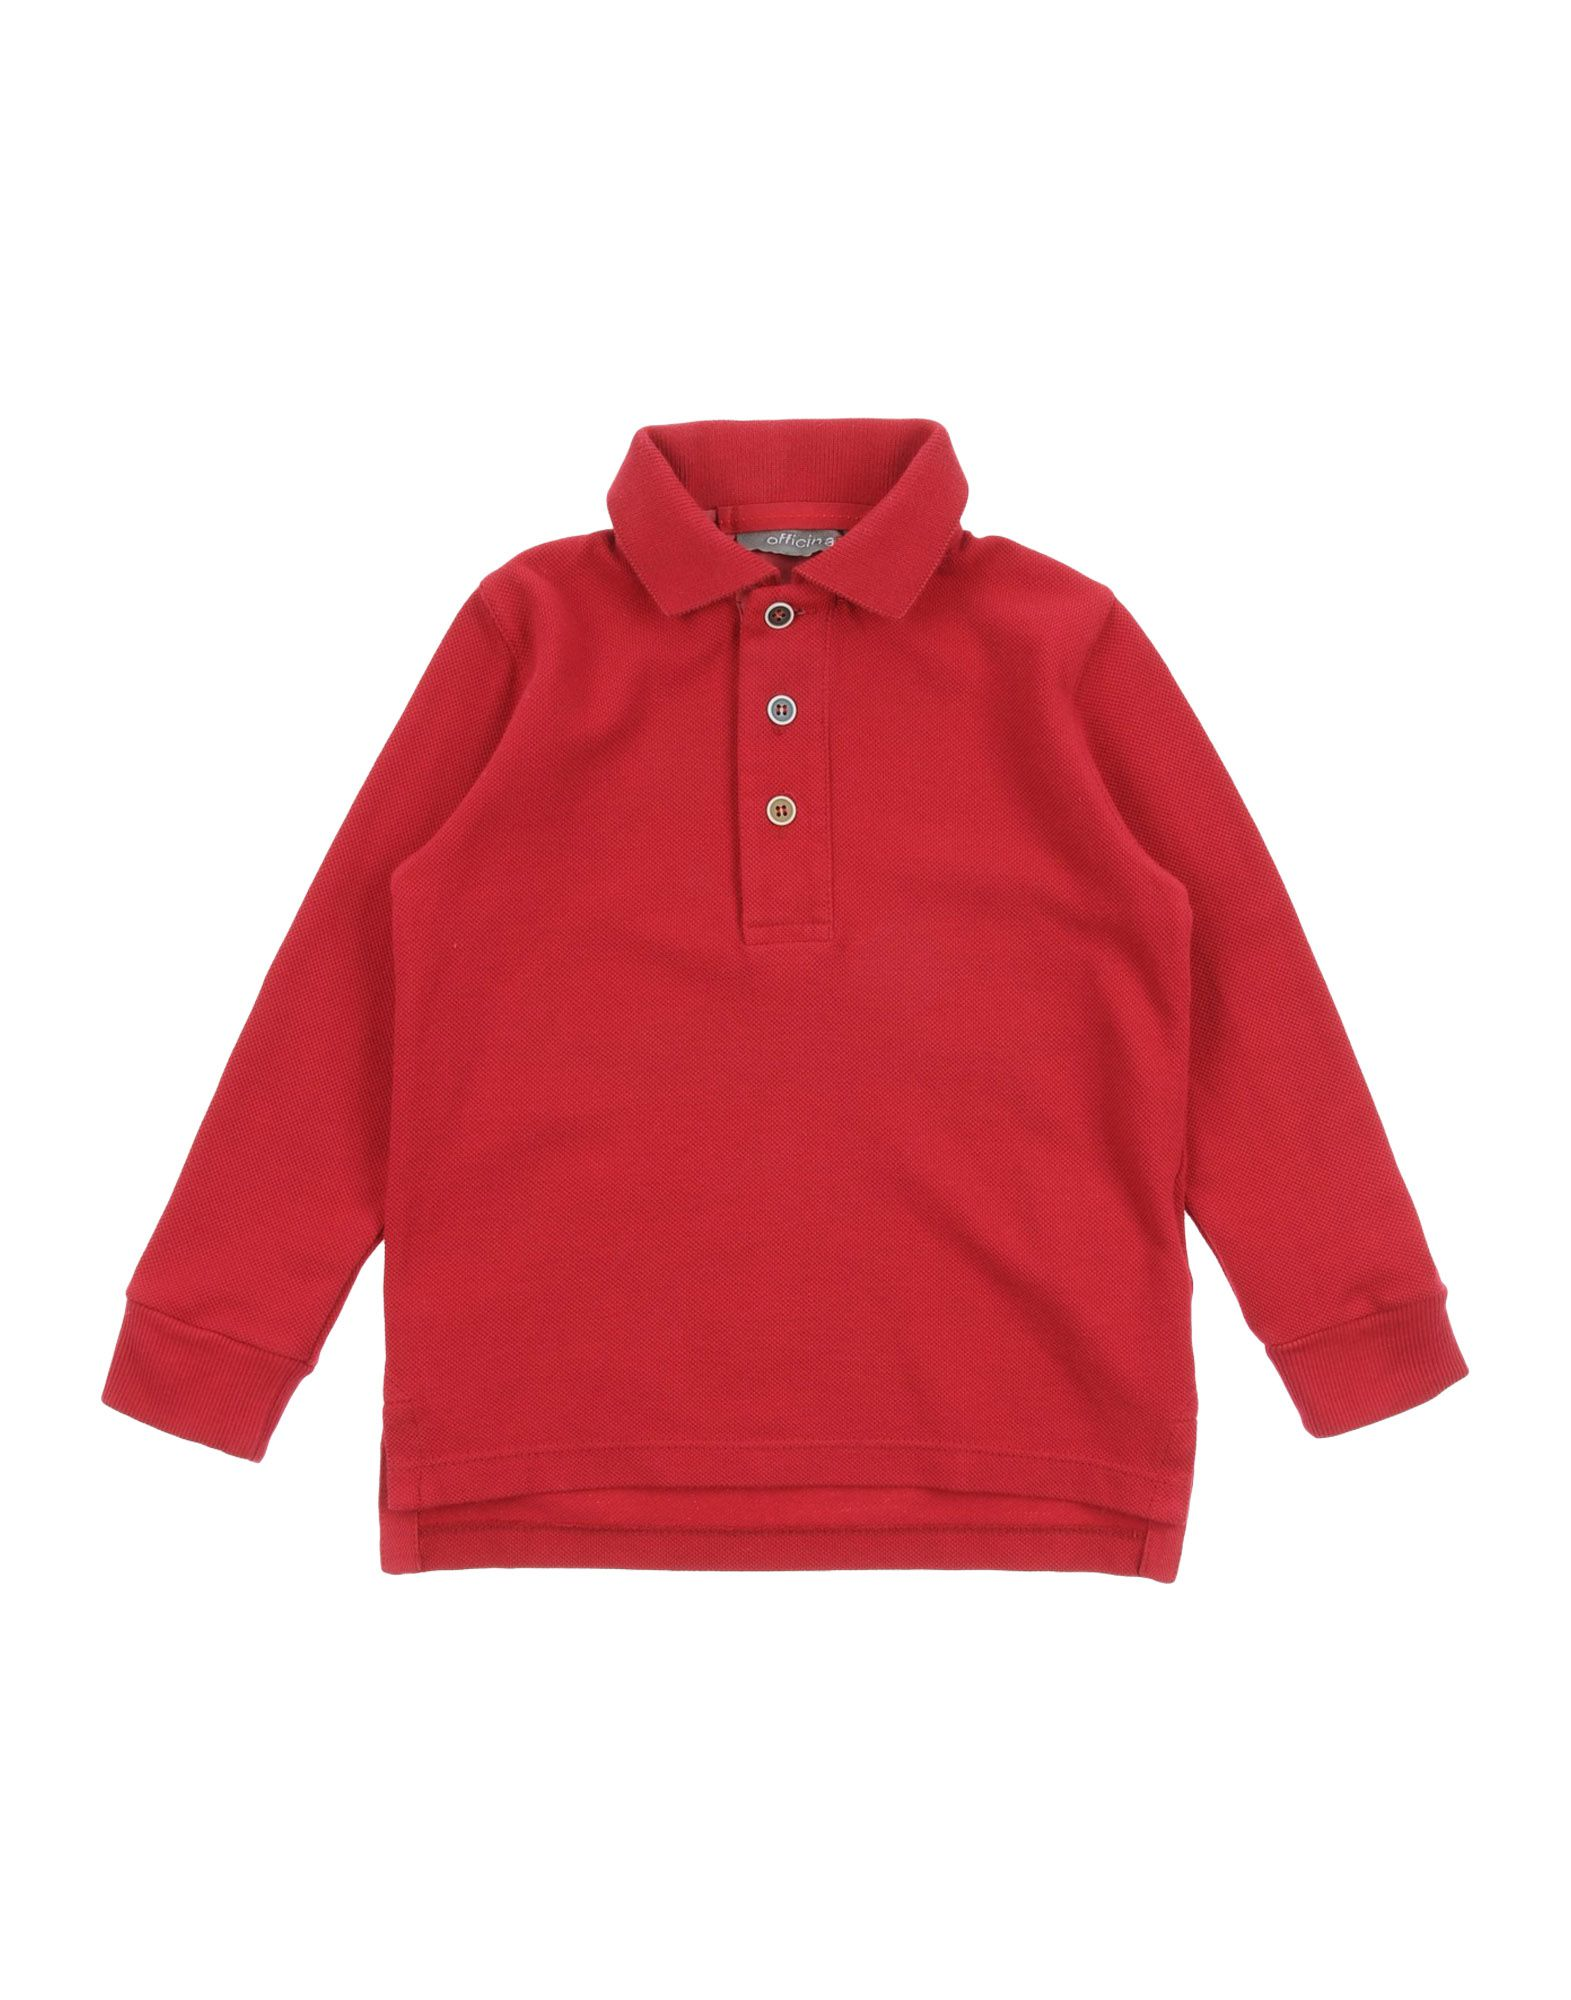 OFFICINA 51 T-Shirt in Brick Red